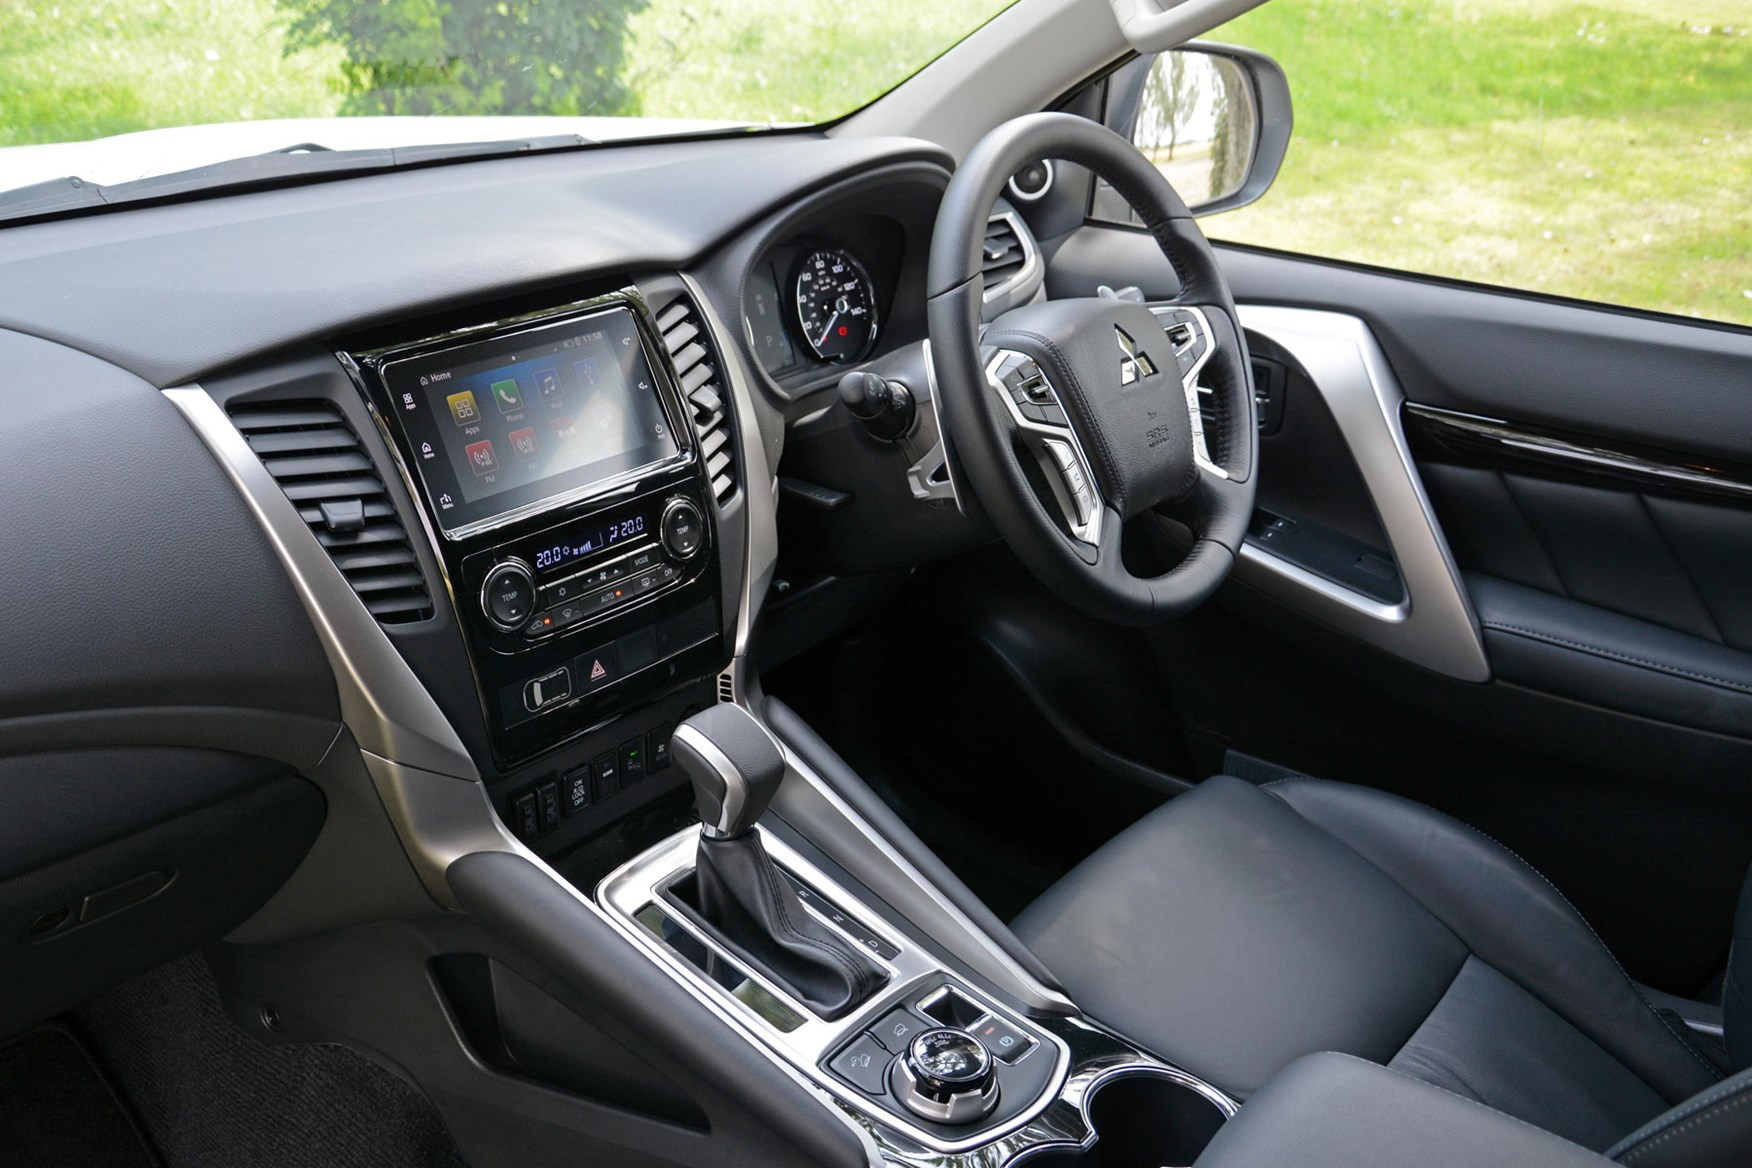 Mitsubishi Shogun Sport Commercial 4x4 van review - cab interior showing dashboard and steering wheel